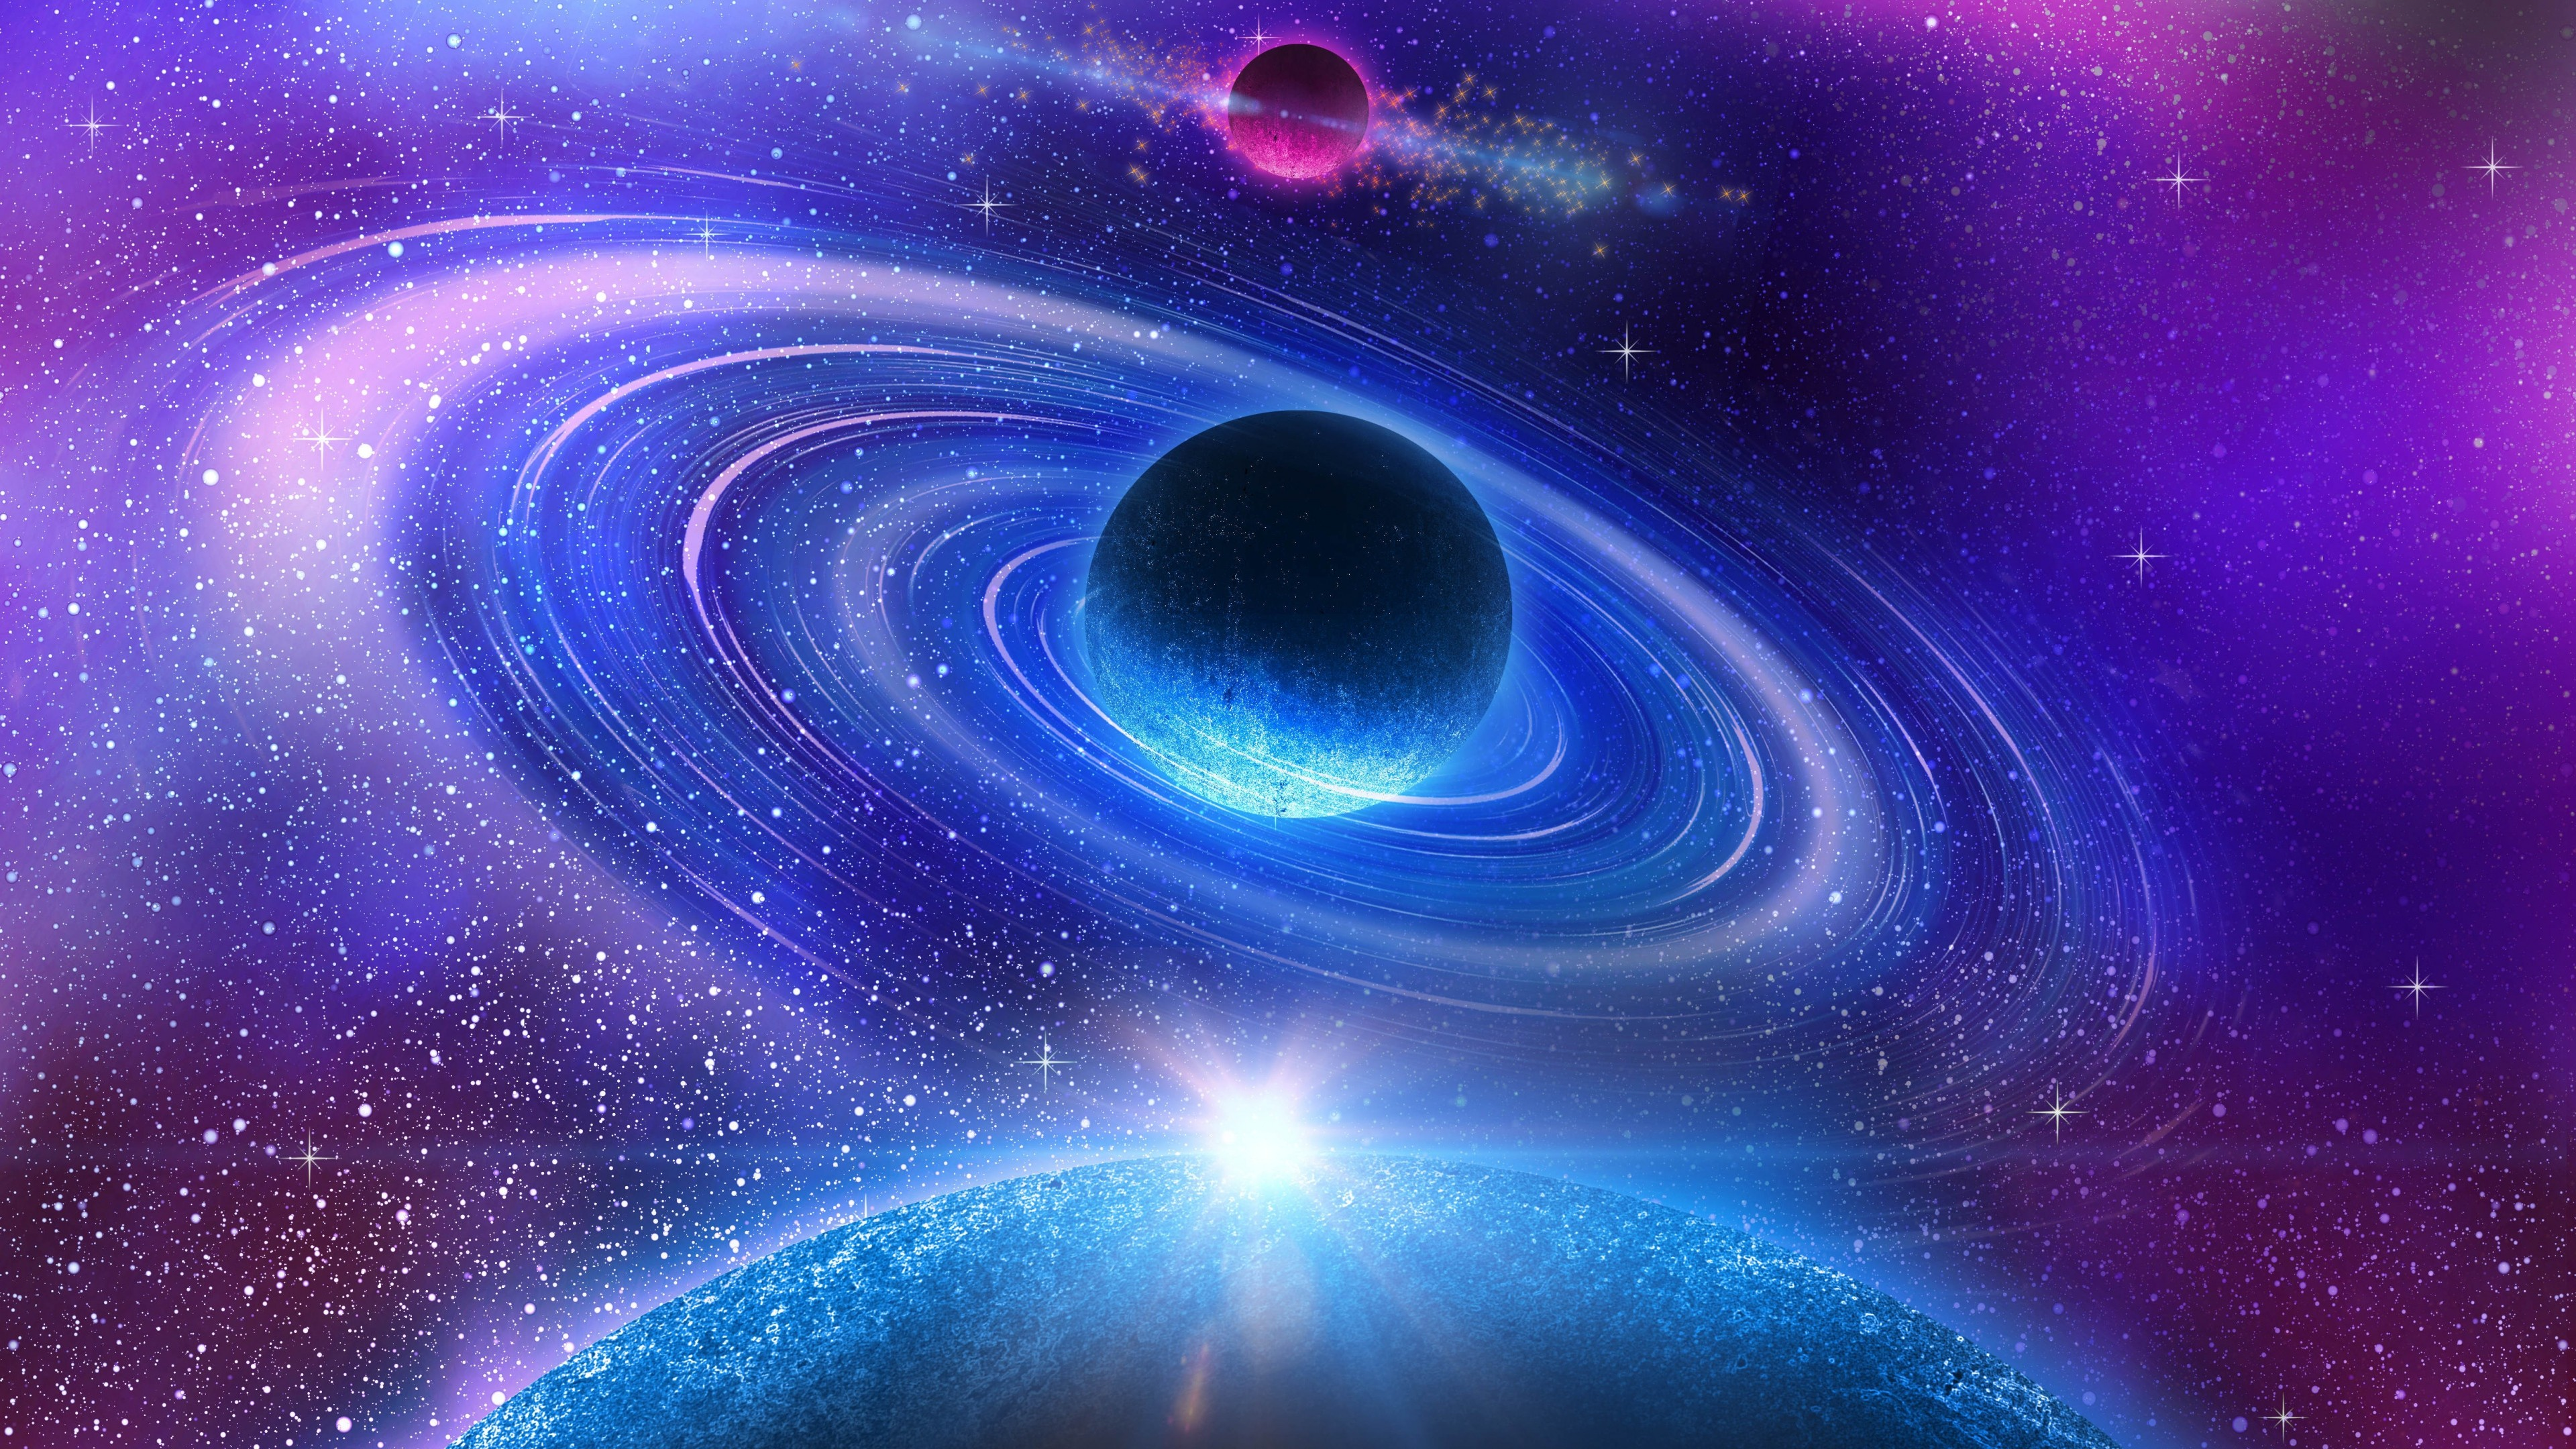 4k Hd Wallapaper: Space Wallpaper 4K ·① Download Free Awesome High